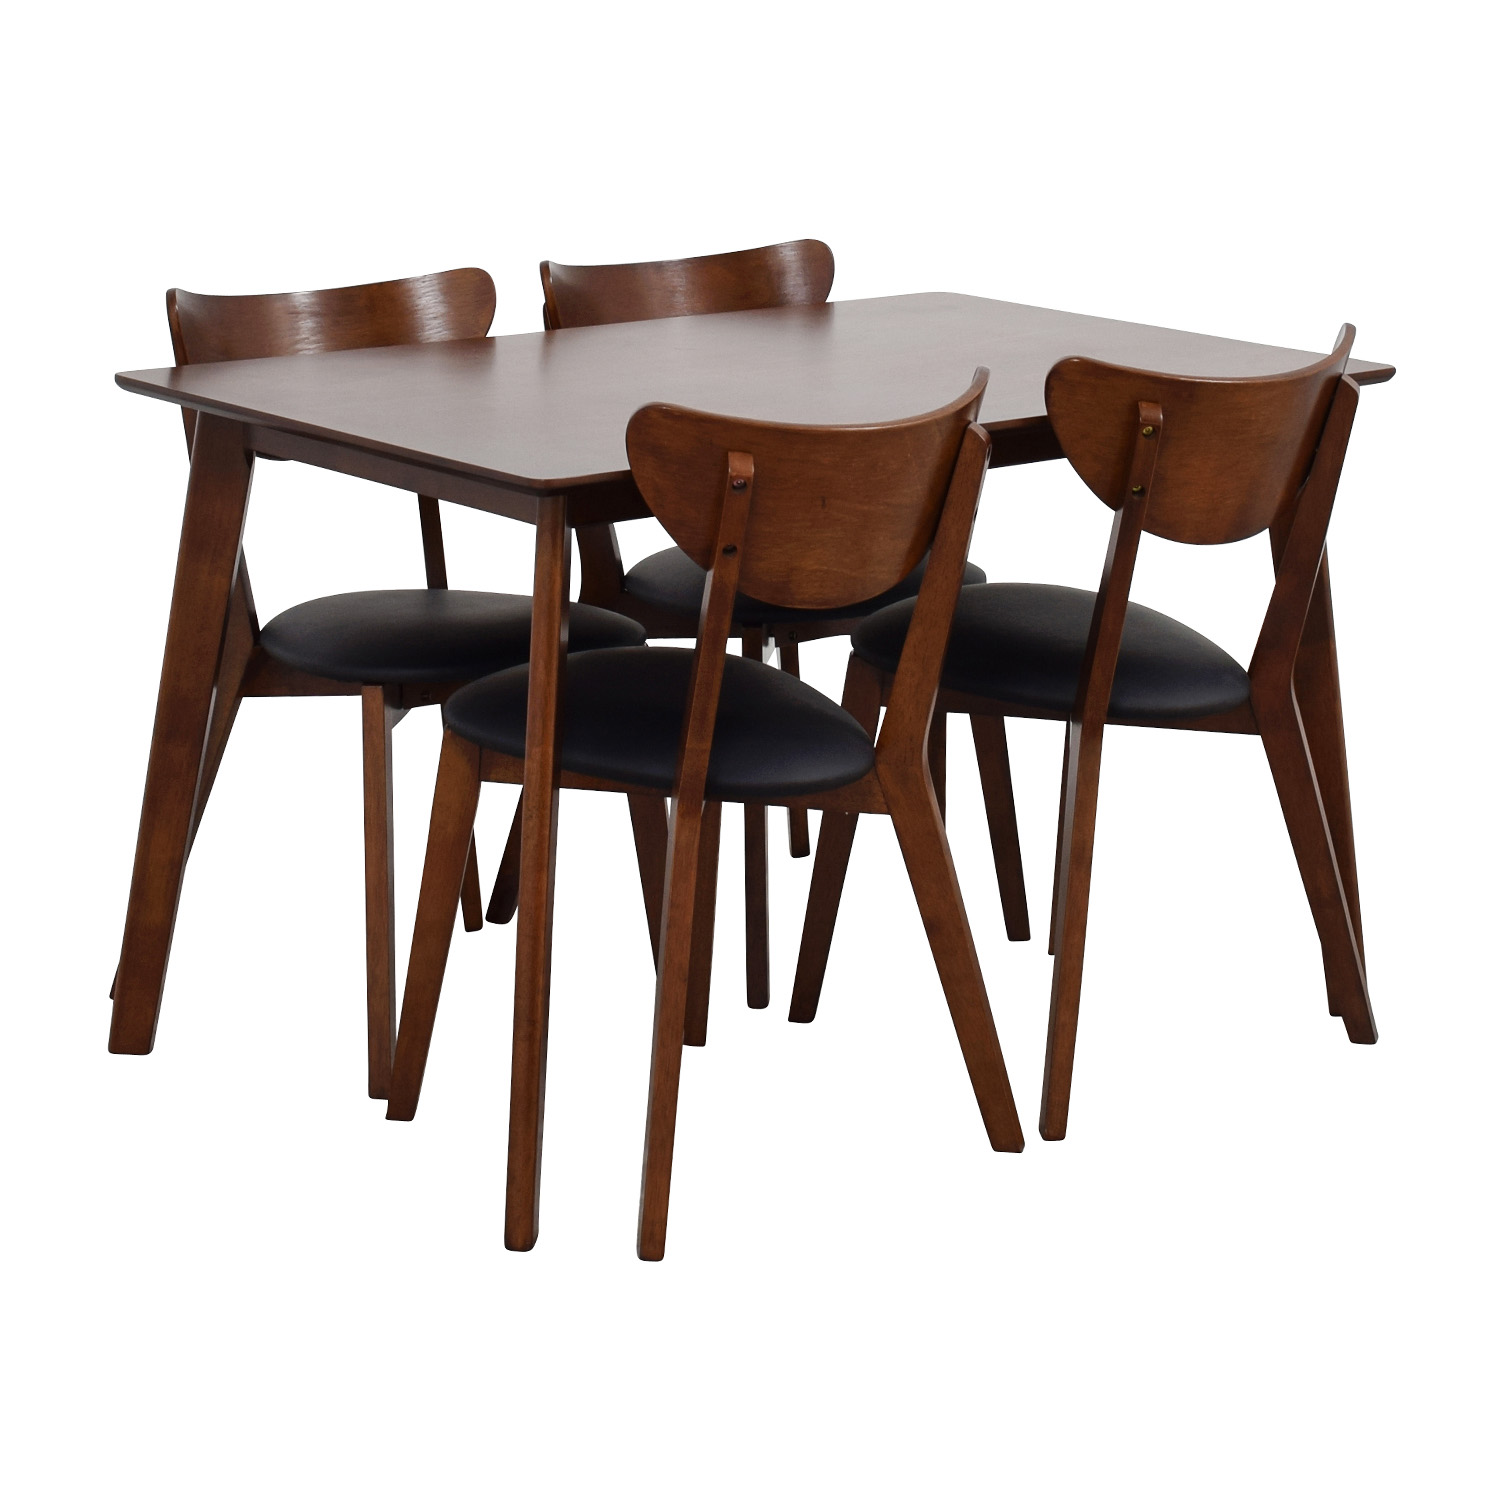 35 off wholesale interiors brown dining table set with for Four chair dining table set